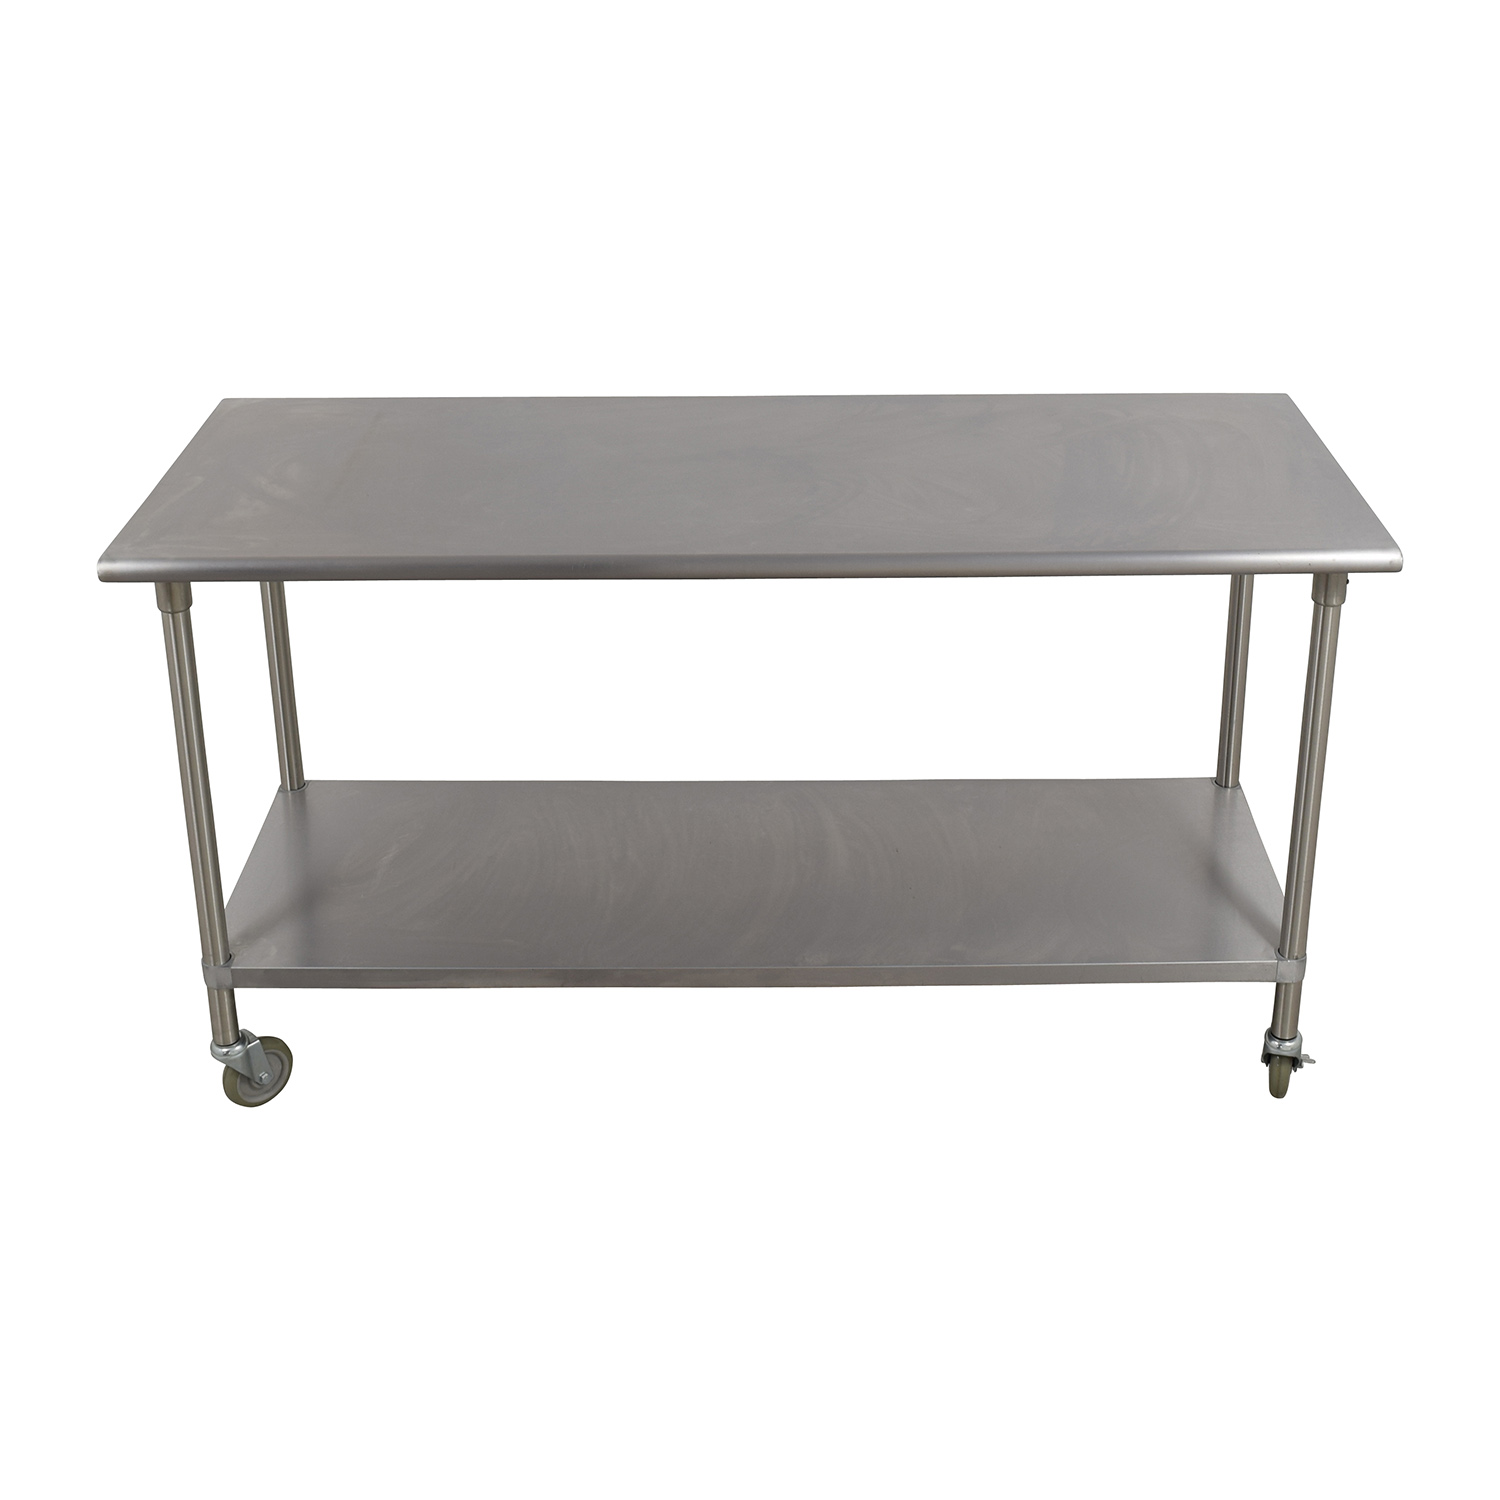 83 off bowery kitchen bowery kitchen stainless steel table tables